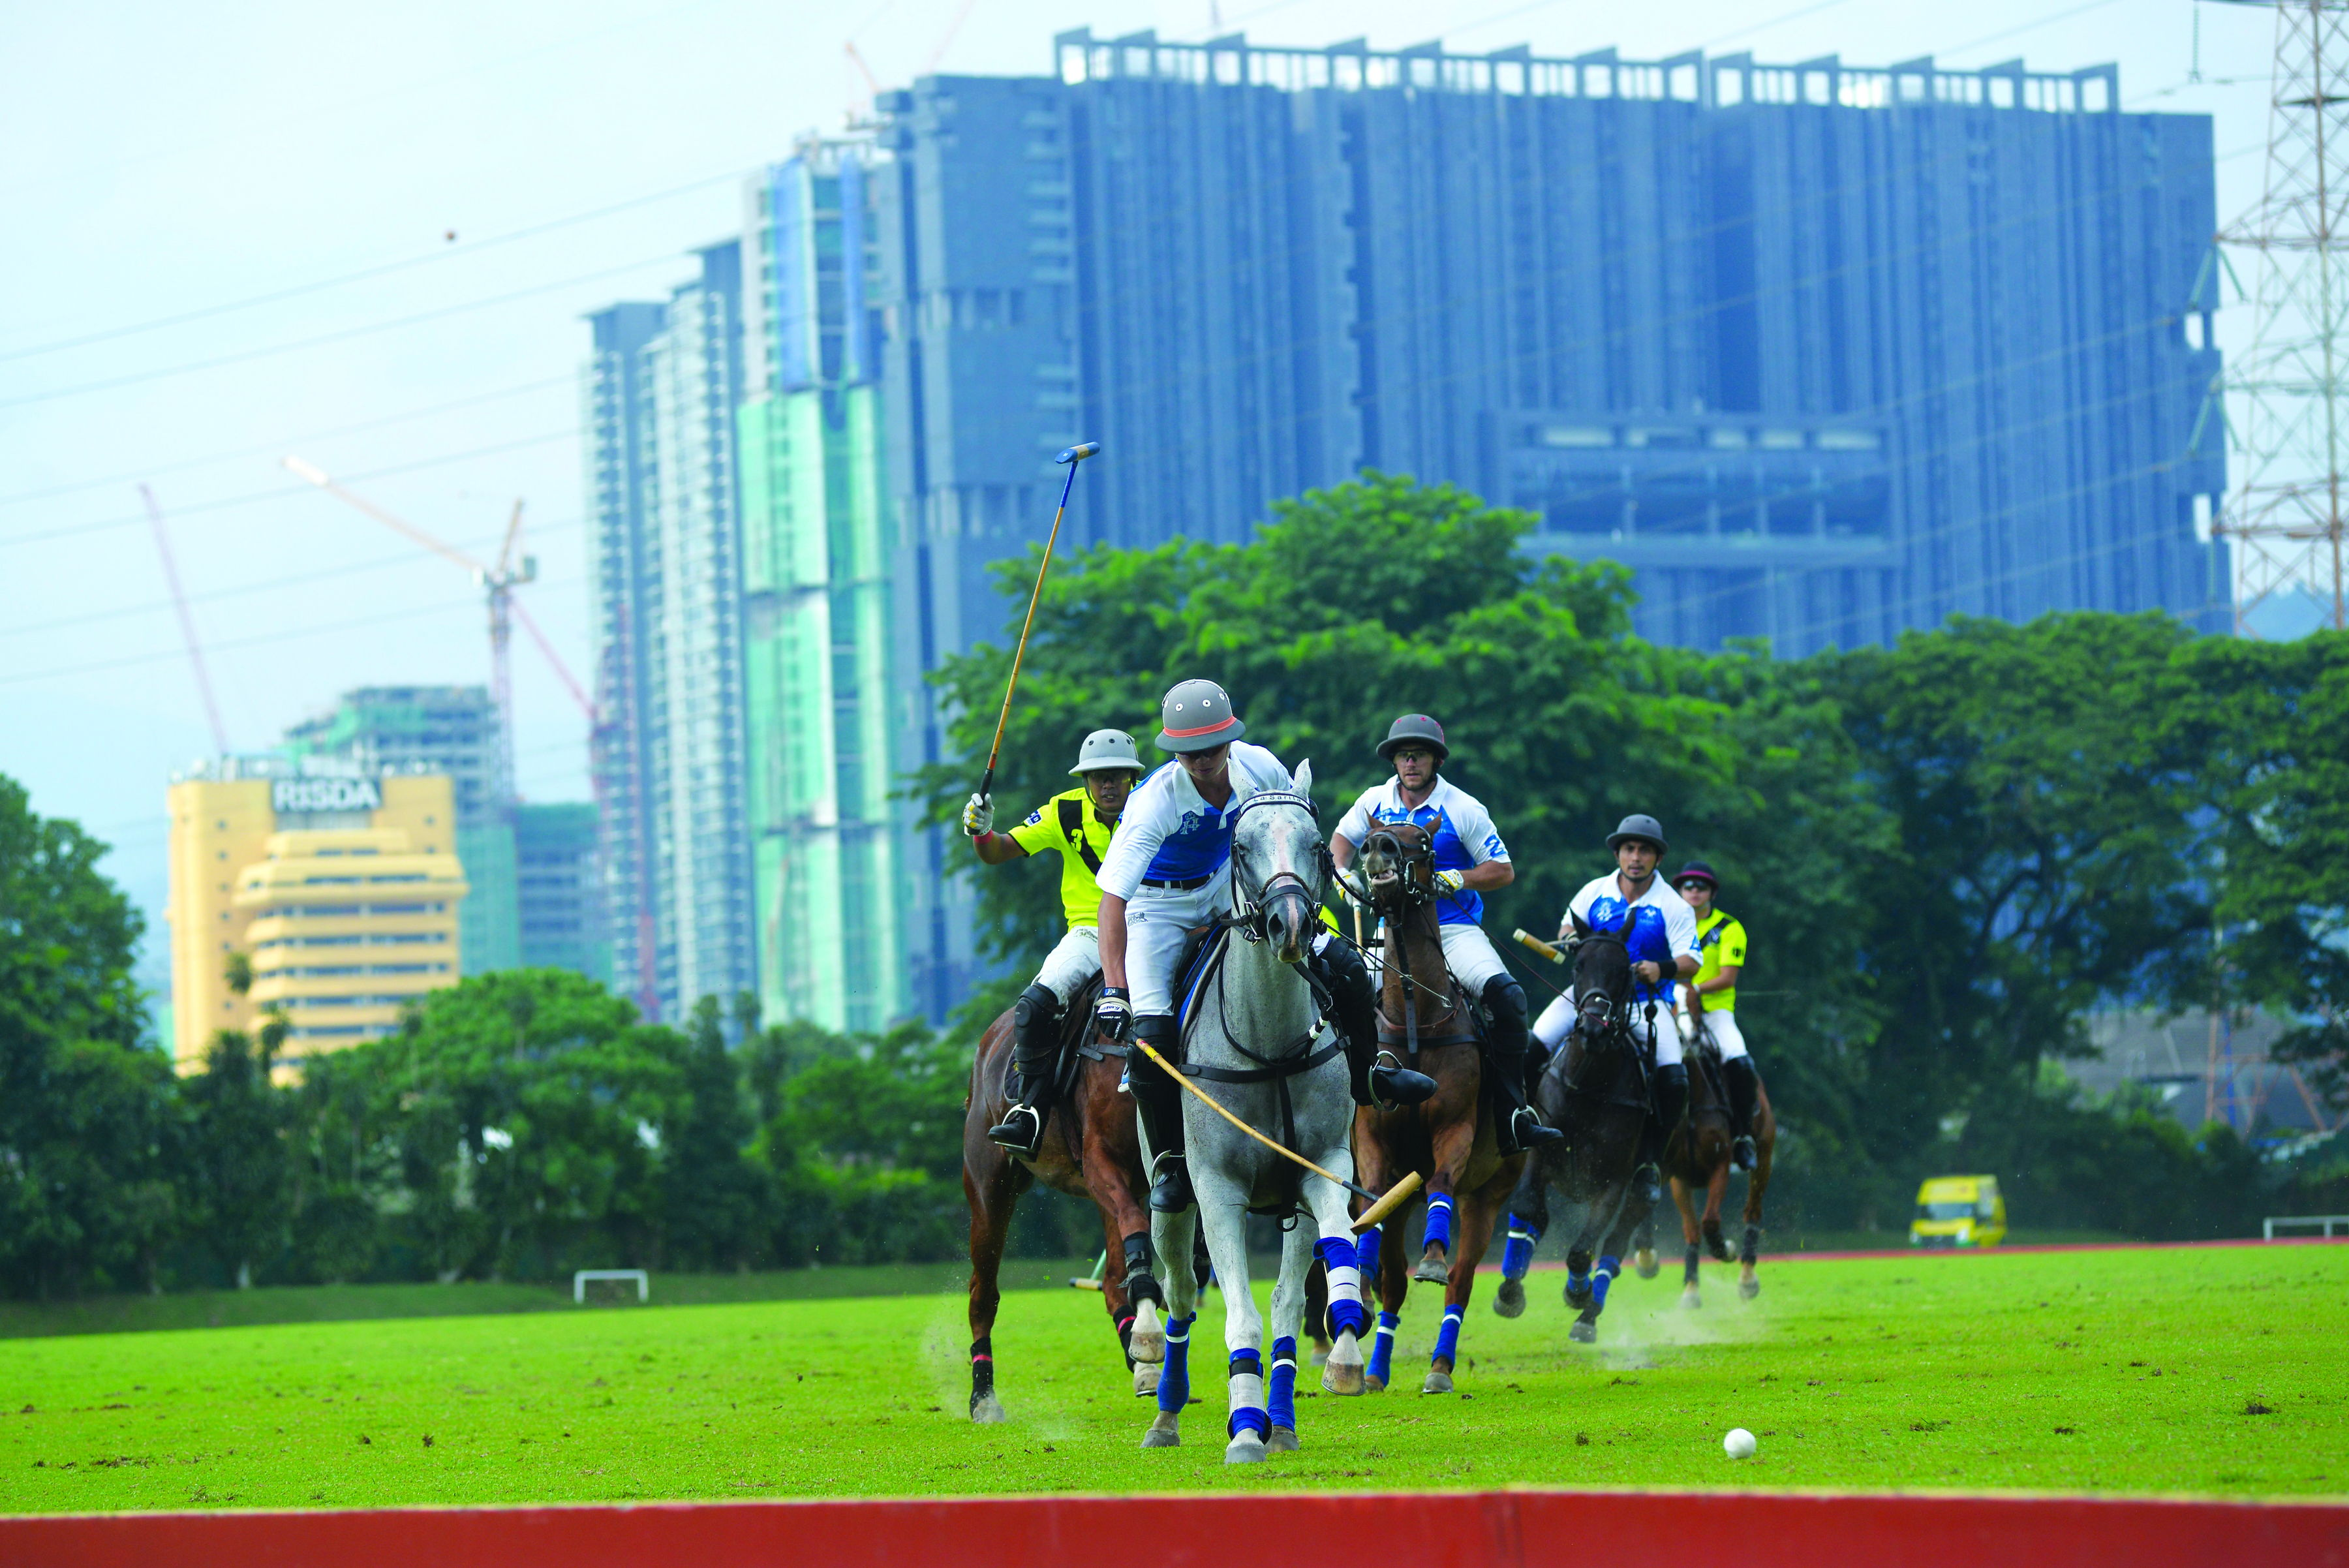 The Royal Pahang Polo